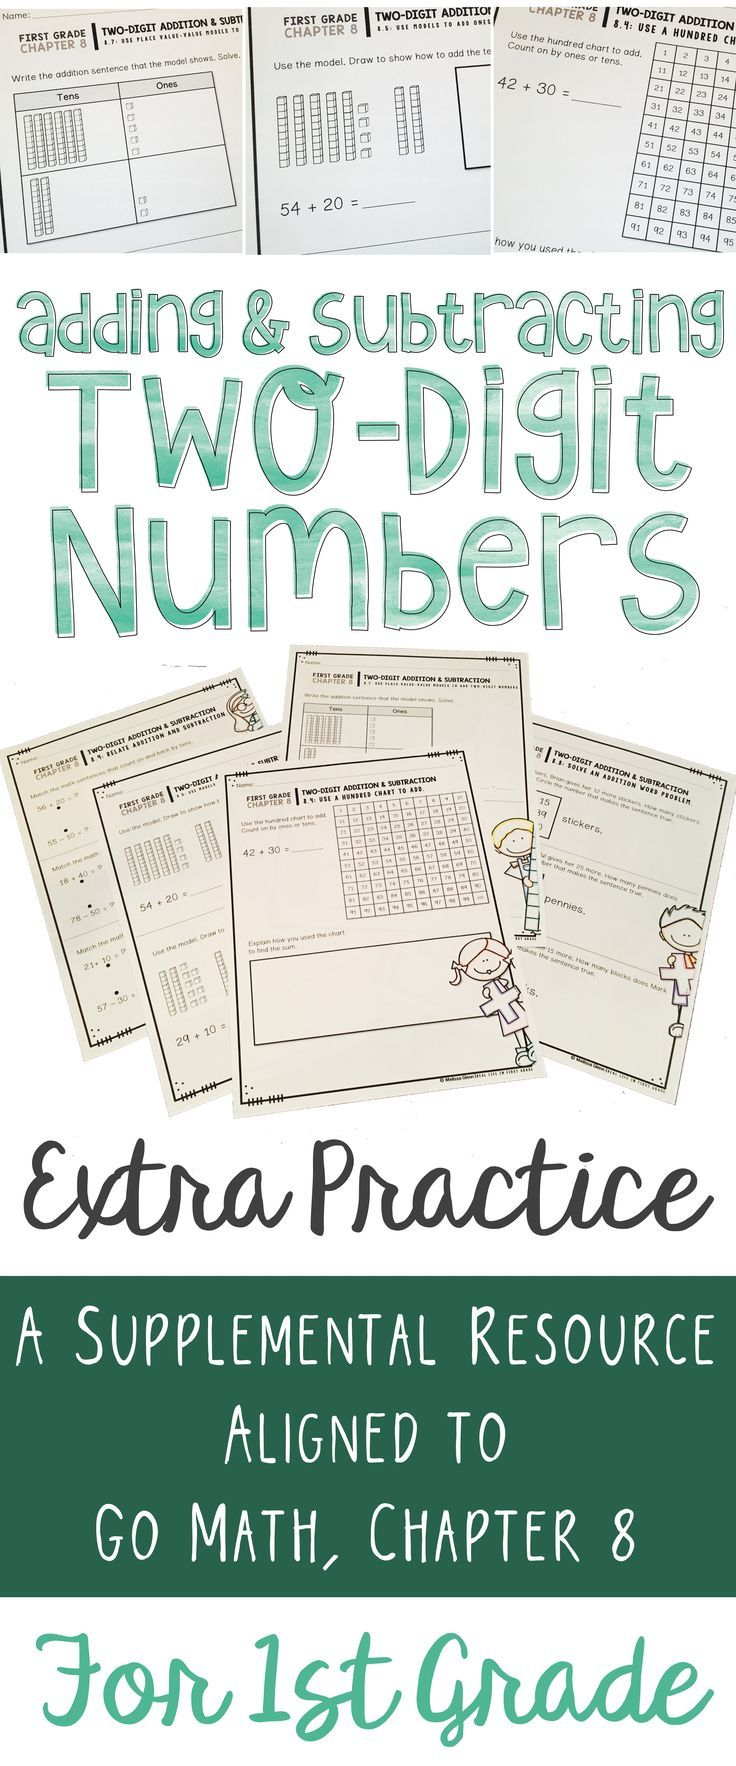 These extra practice pages are perfectly aligned to Go Math Chapter 8 (for first grade). Use them as activities or assessments for your students when teaching two-digit addition and subtraction strategies with and without regrouping. These pages have been